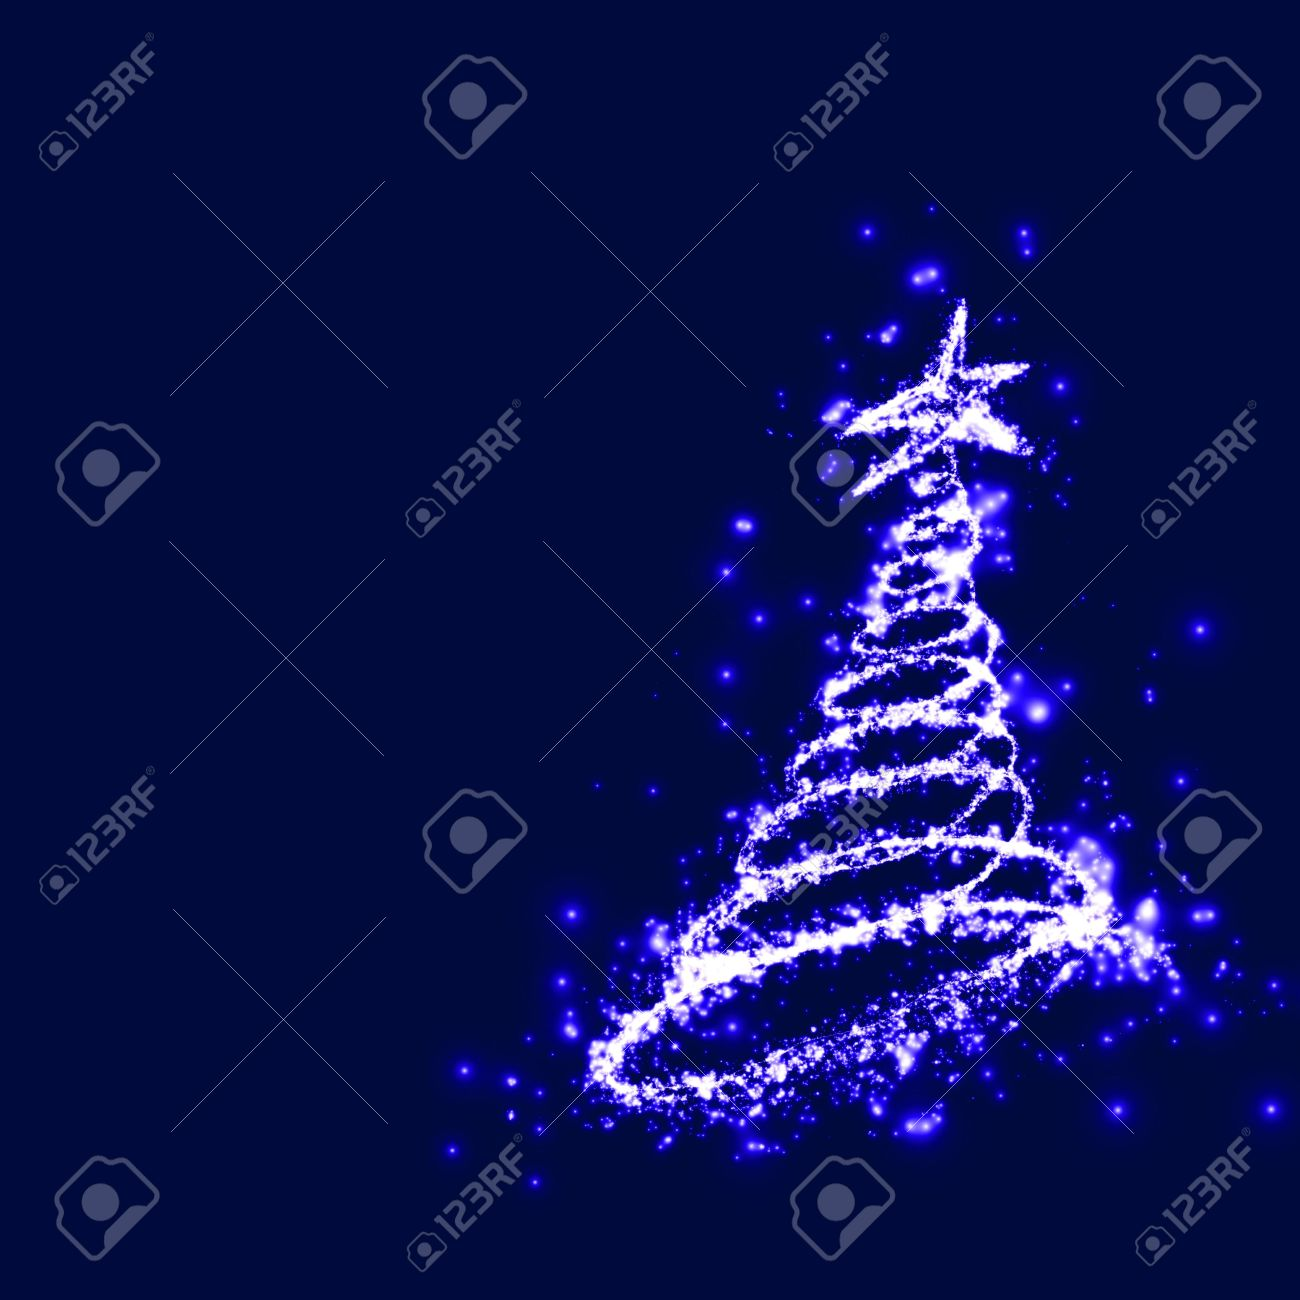 Christmas Magic Christmas Tree At The Dark Blue Holy Night Of  - Magic Christmas Tree